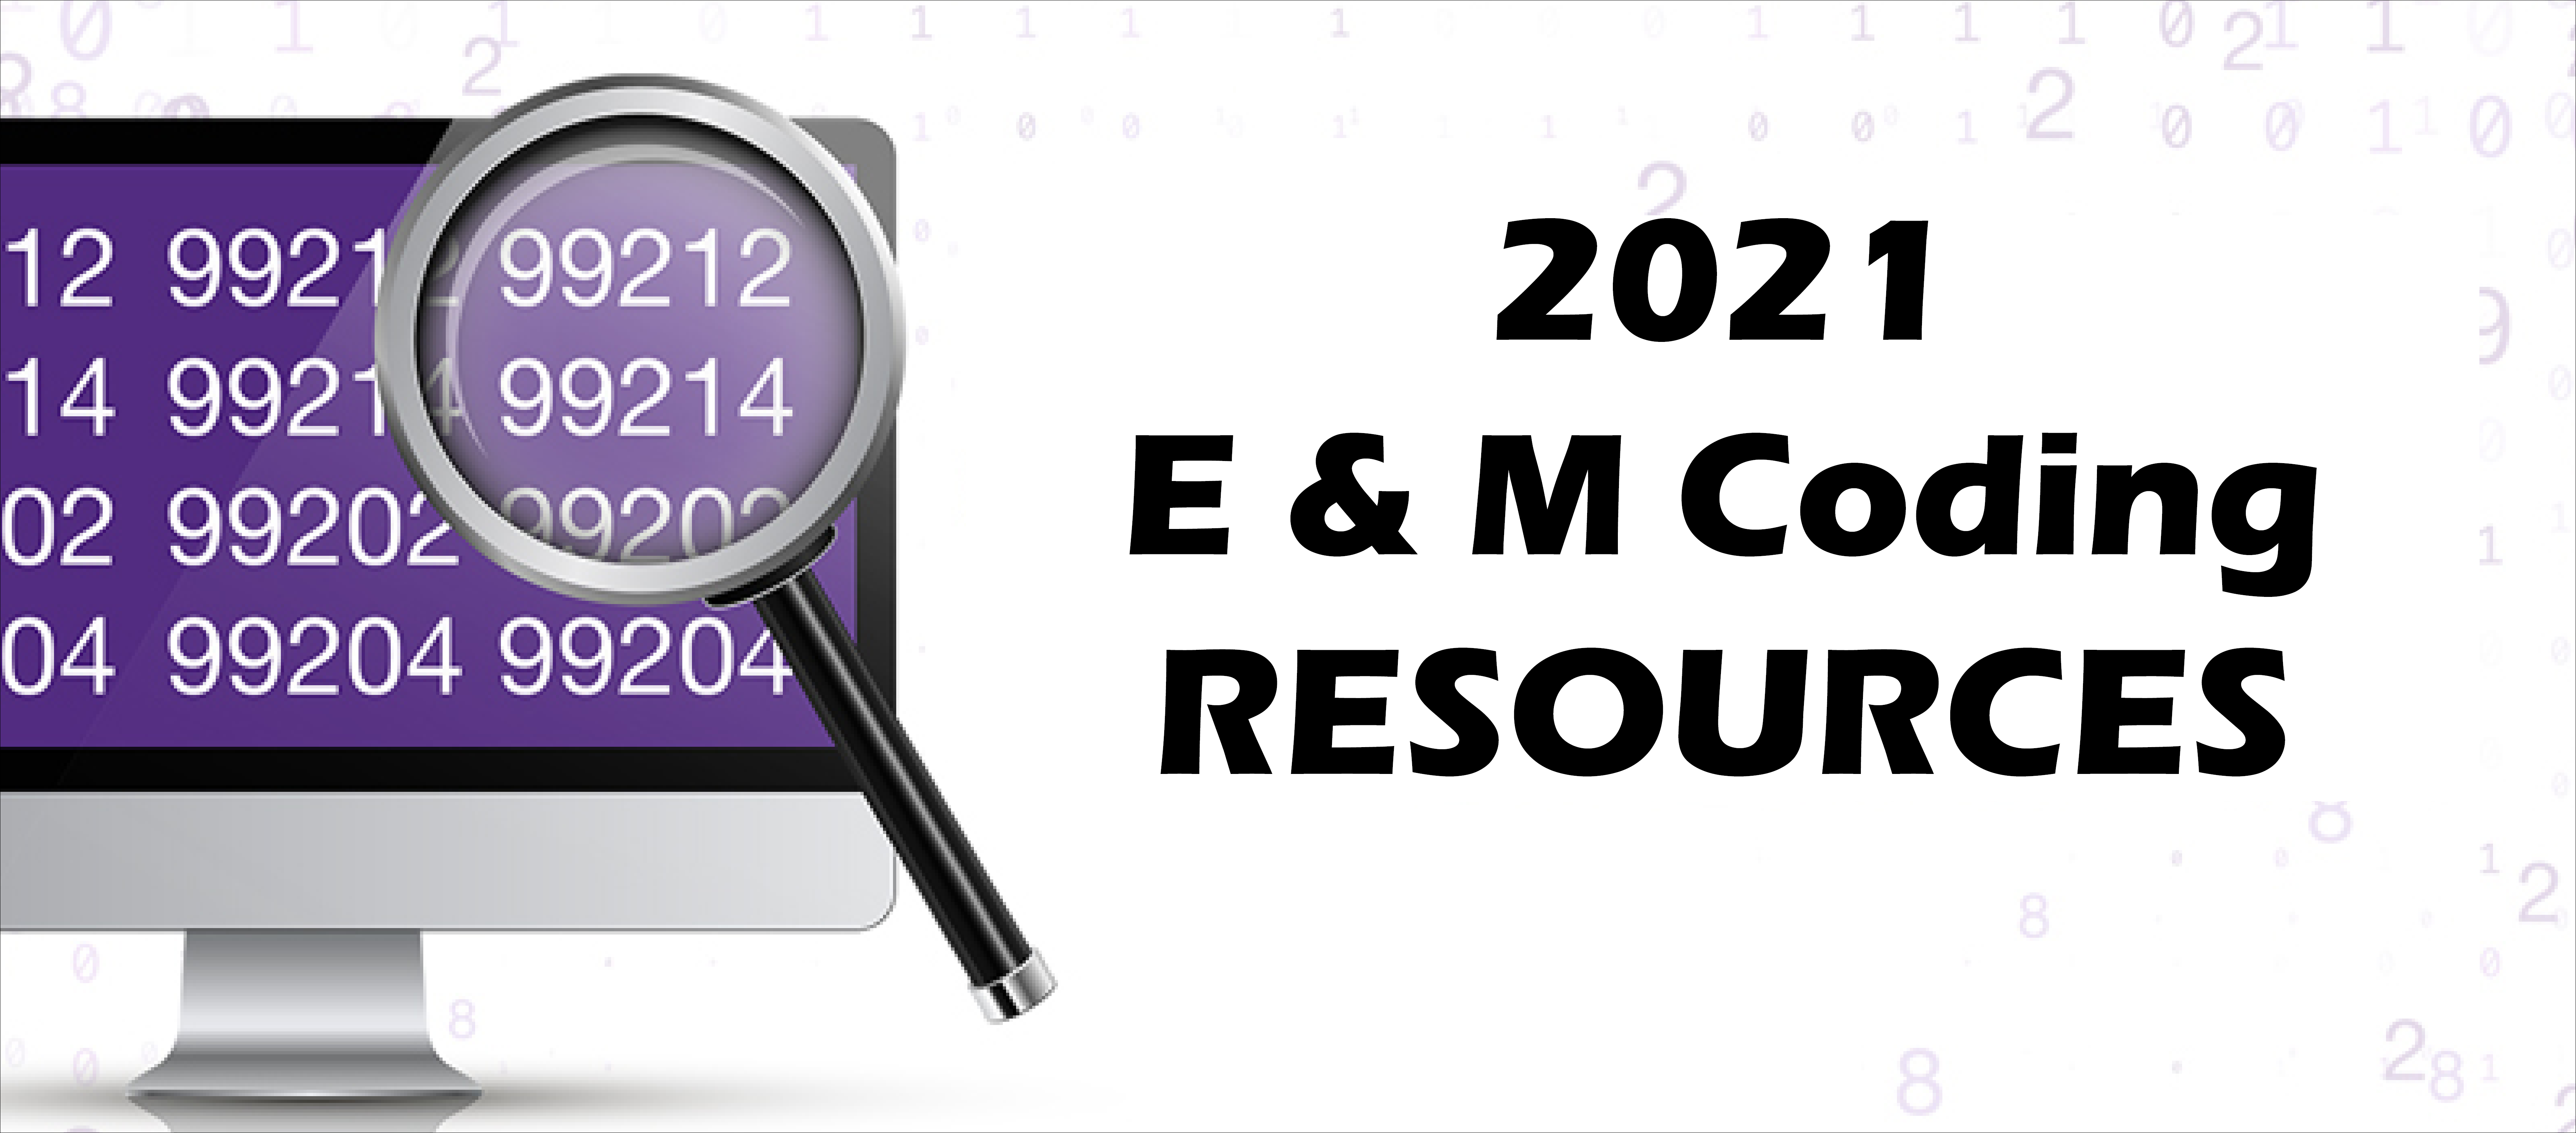 E&M Coding Changes for 2021